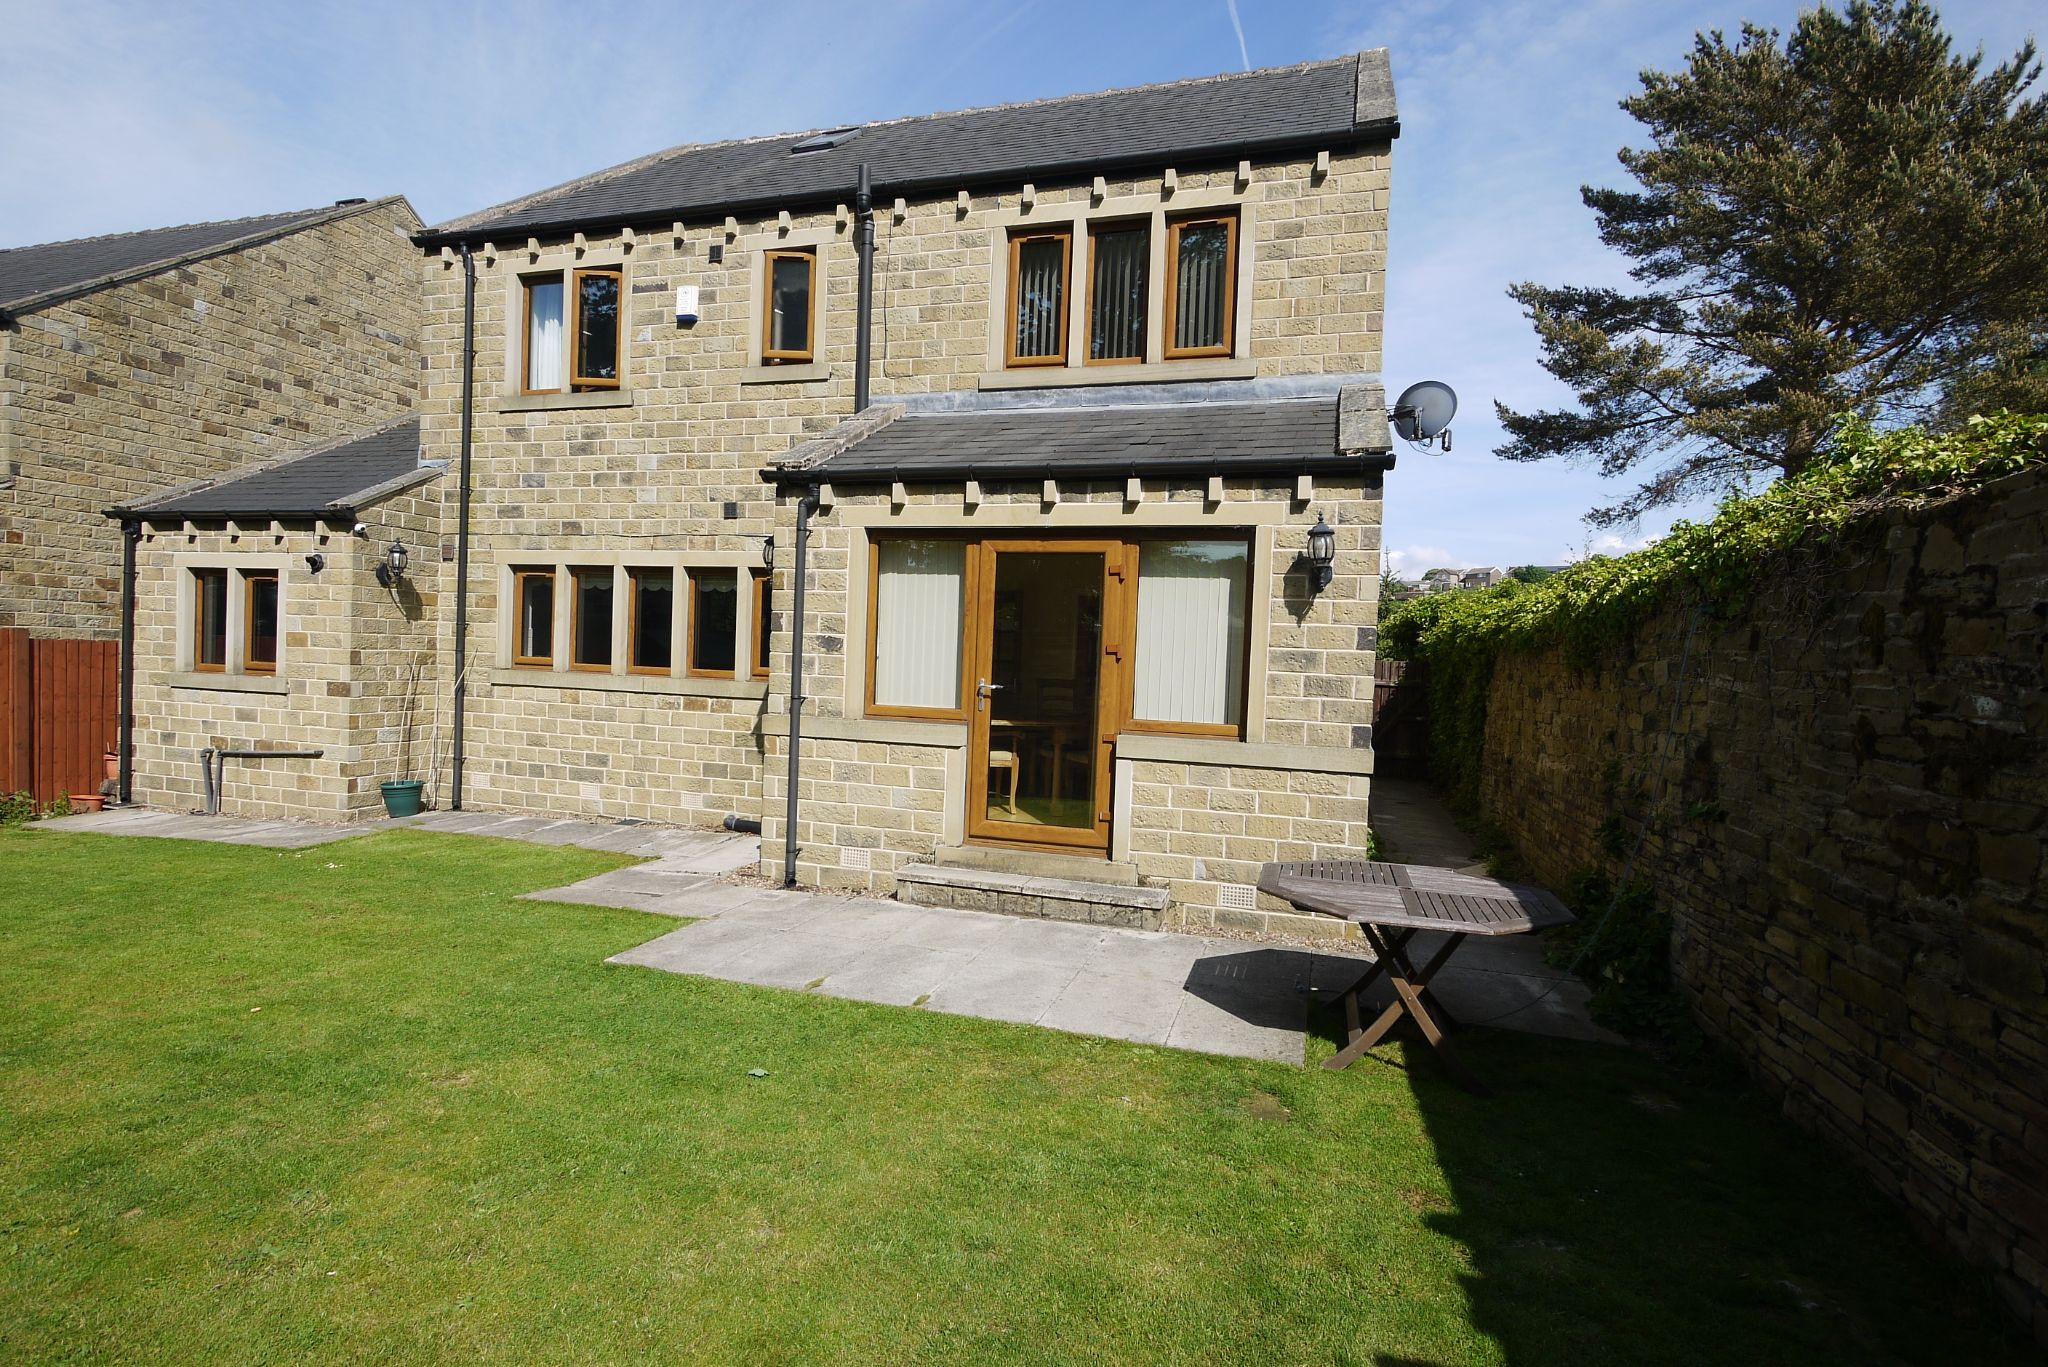 5 bedroom detached house For Sale in Brighouse - Photograph 16.